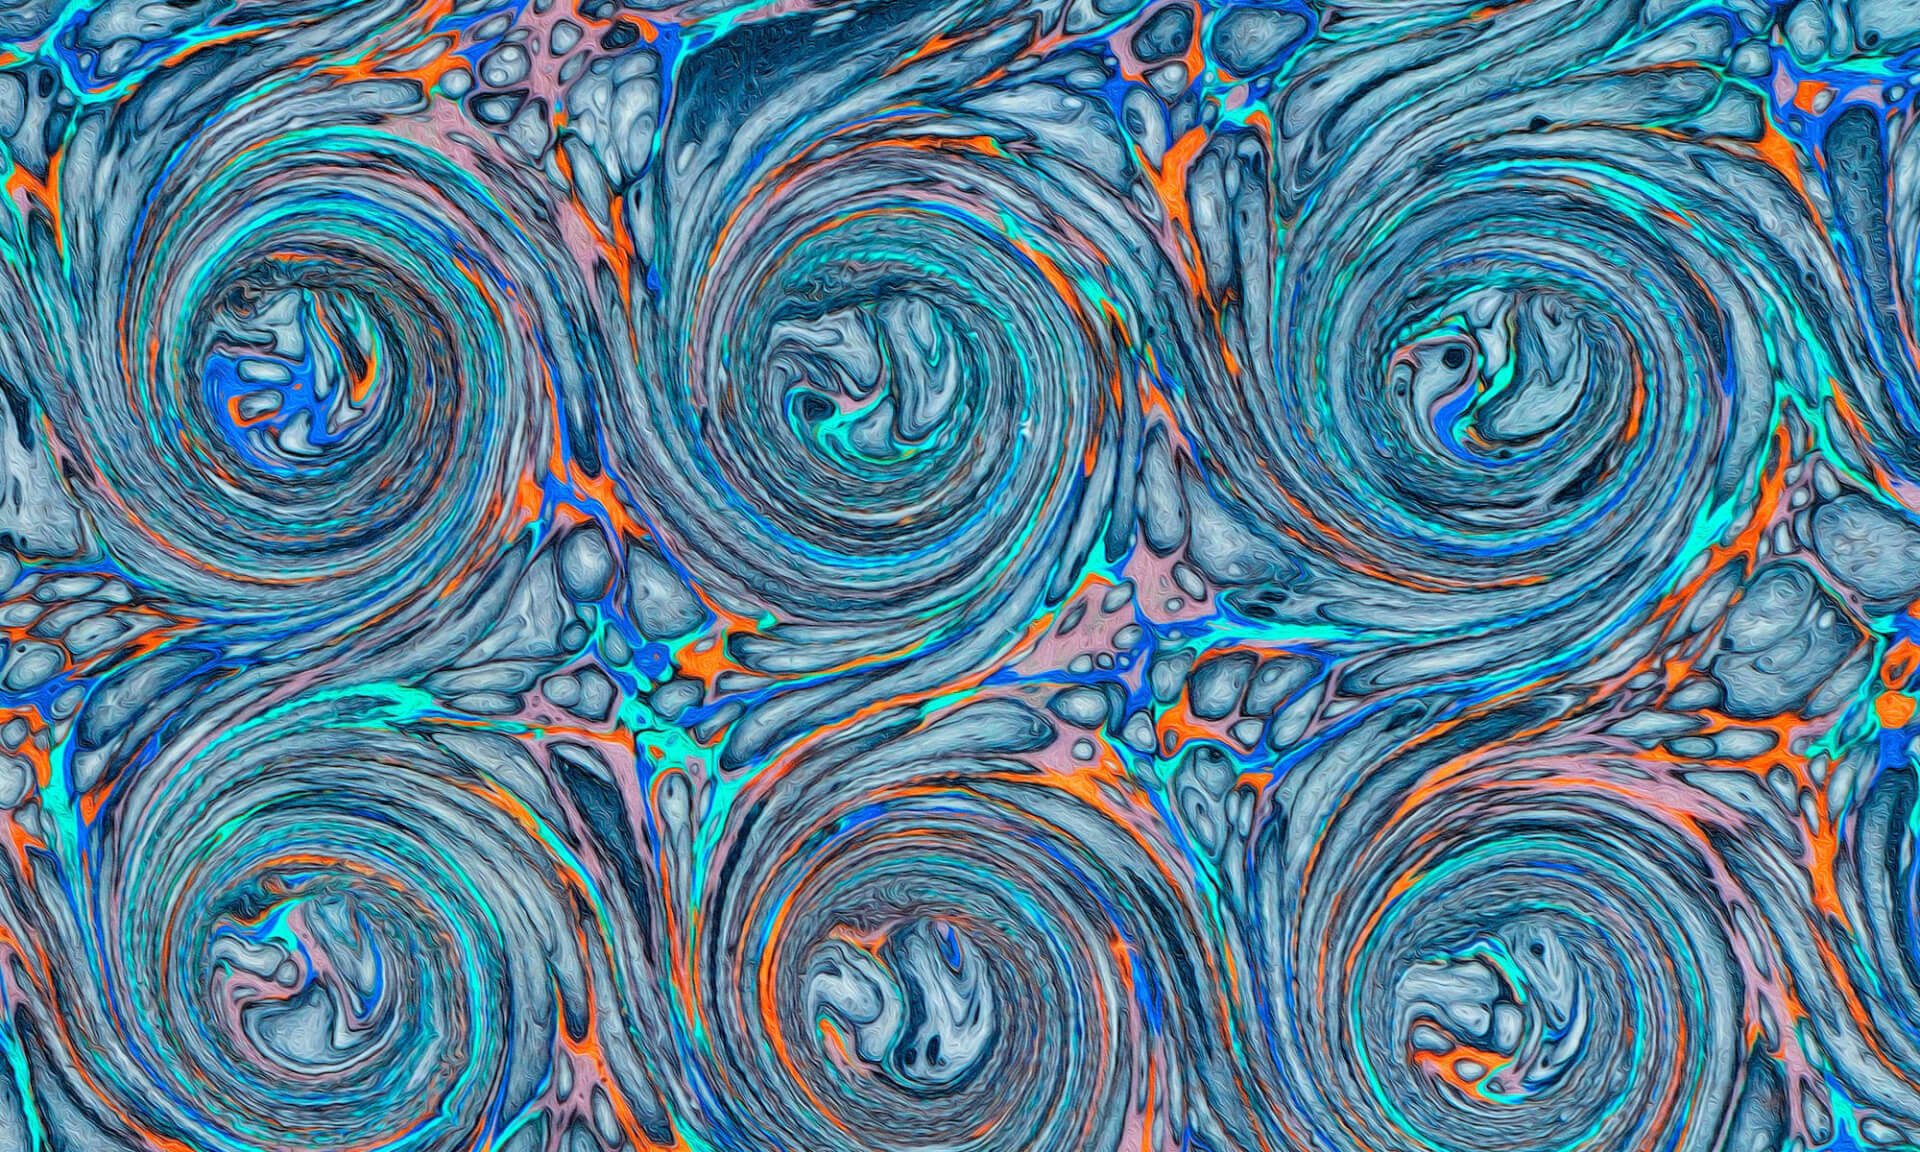 Ink Swirl (DE4690) Inverted & Hue/Sat Doug Garrabrants